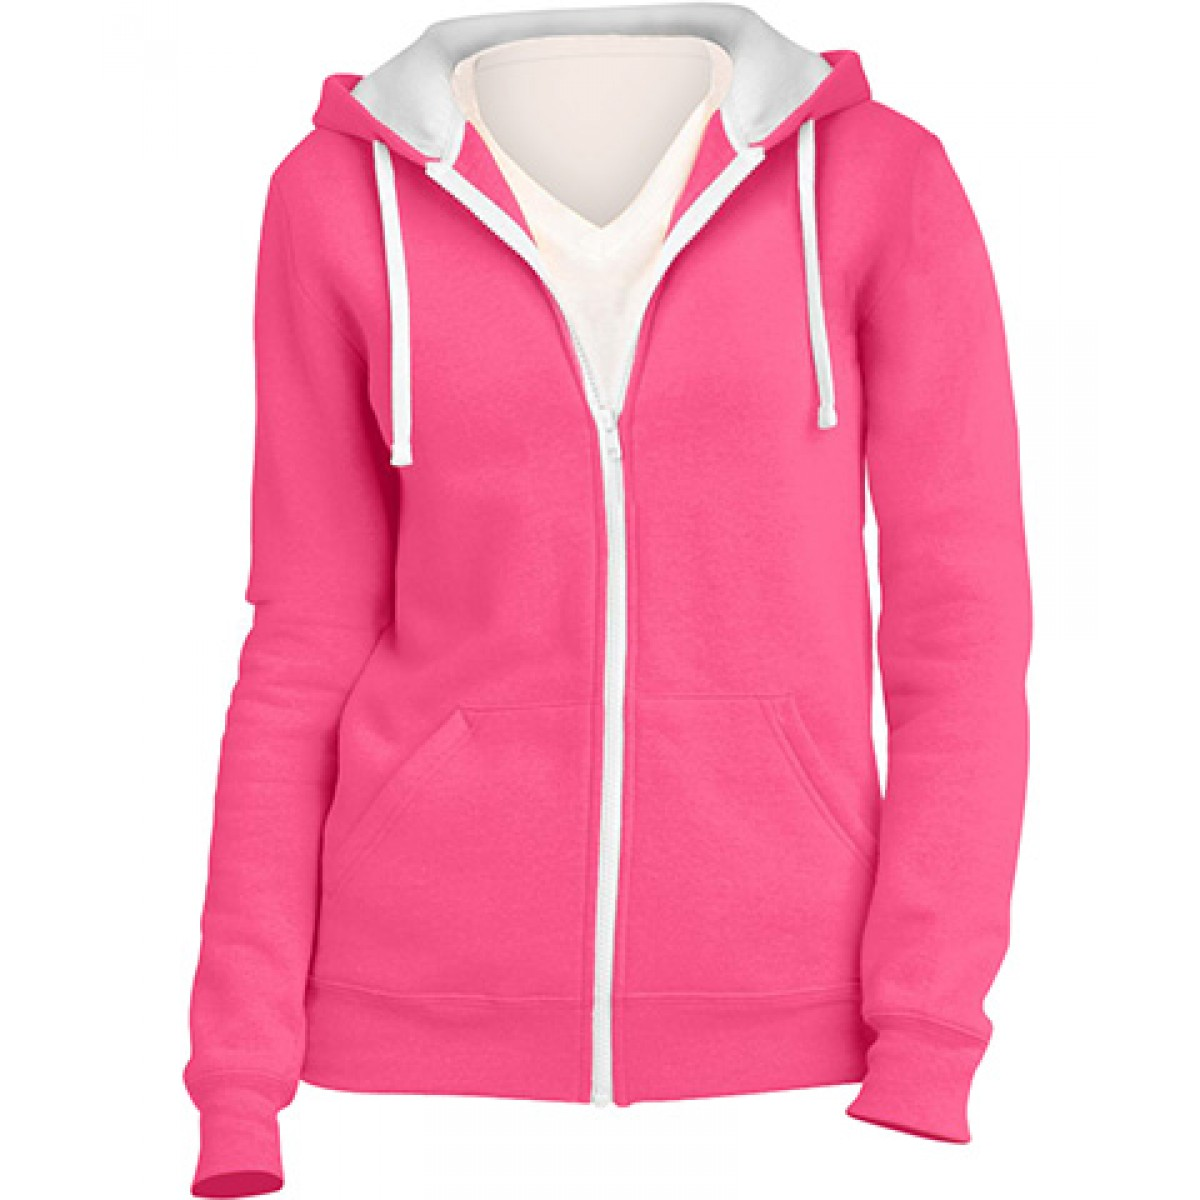 Juniors Full-Zip Hoodie-Neon Pink-3XL